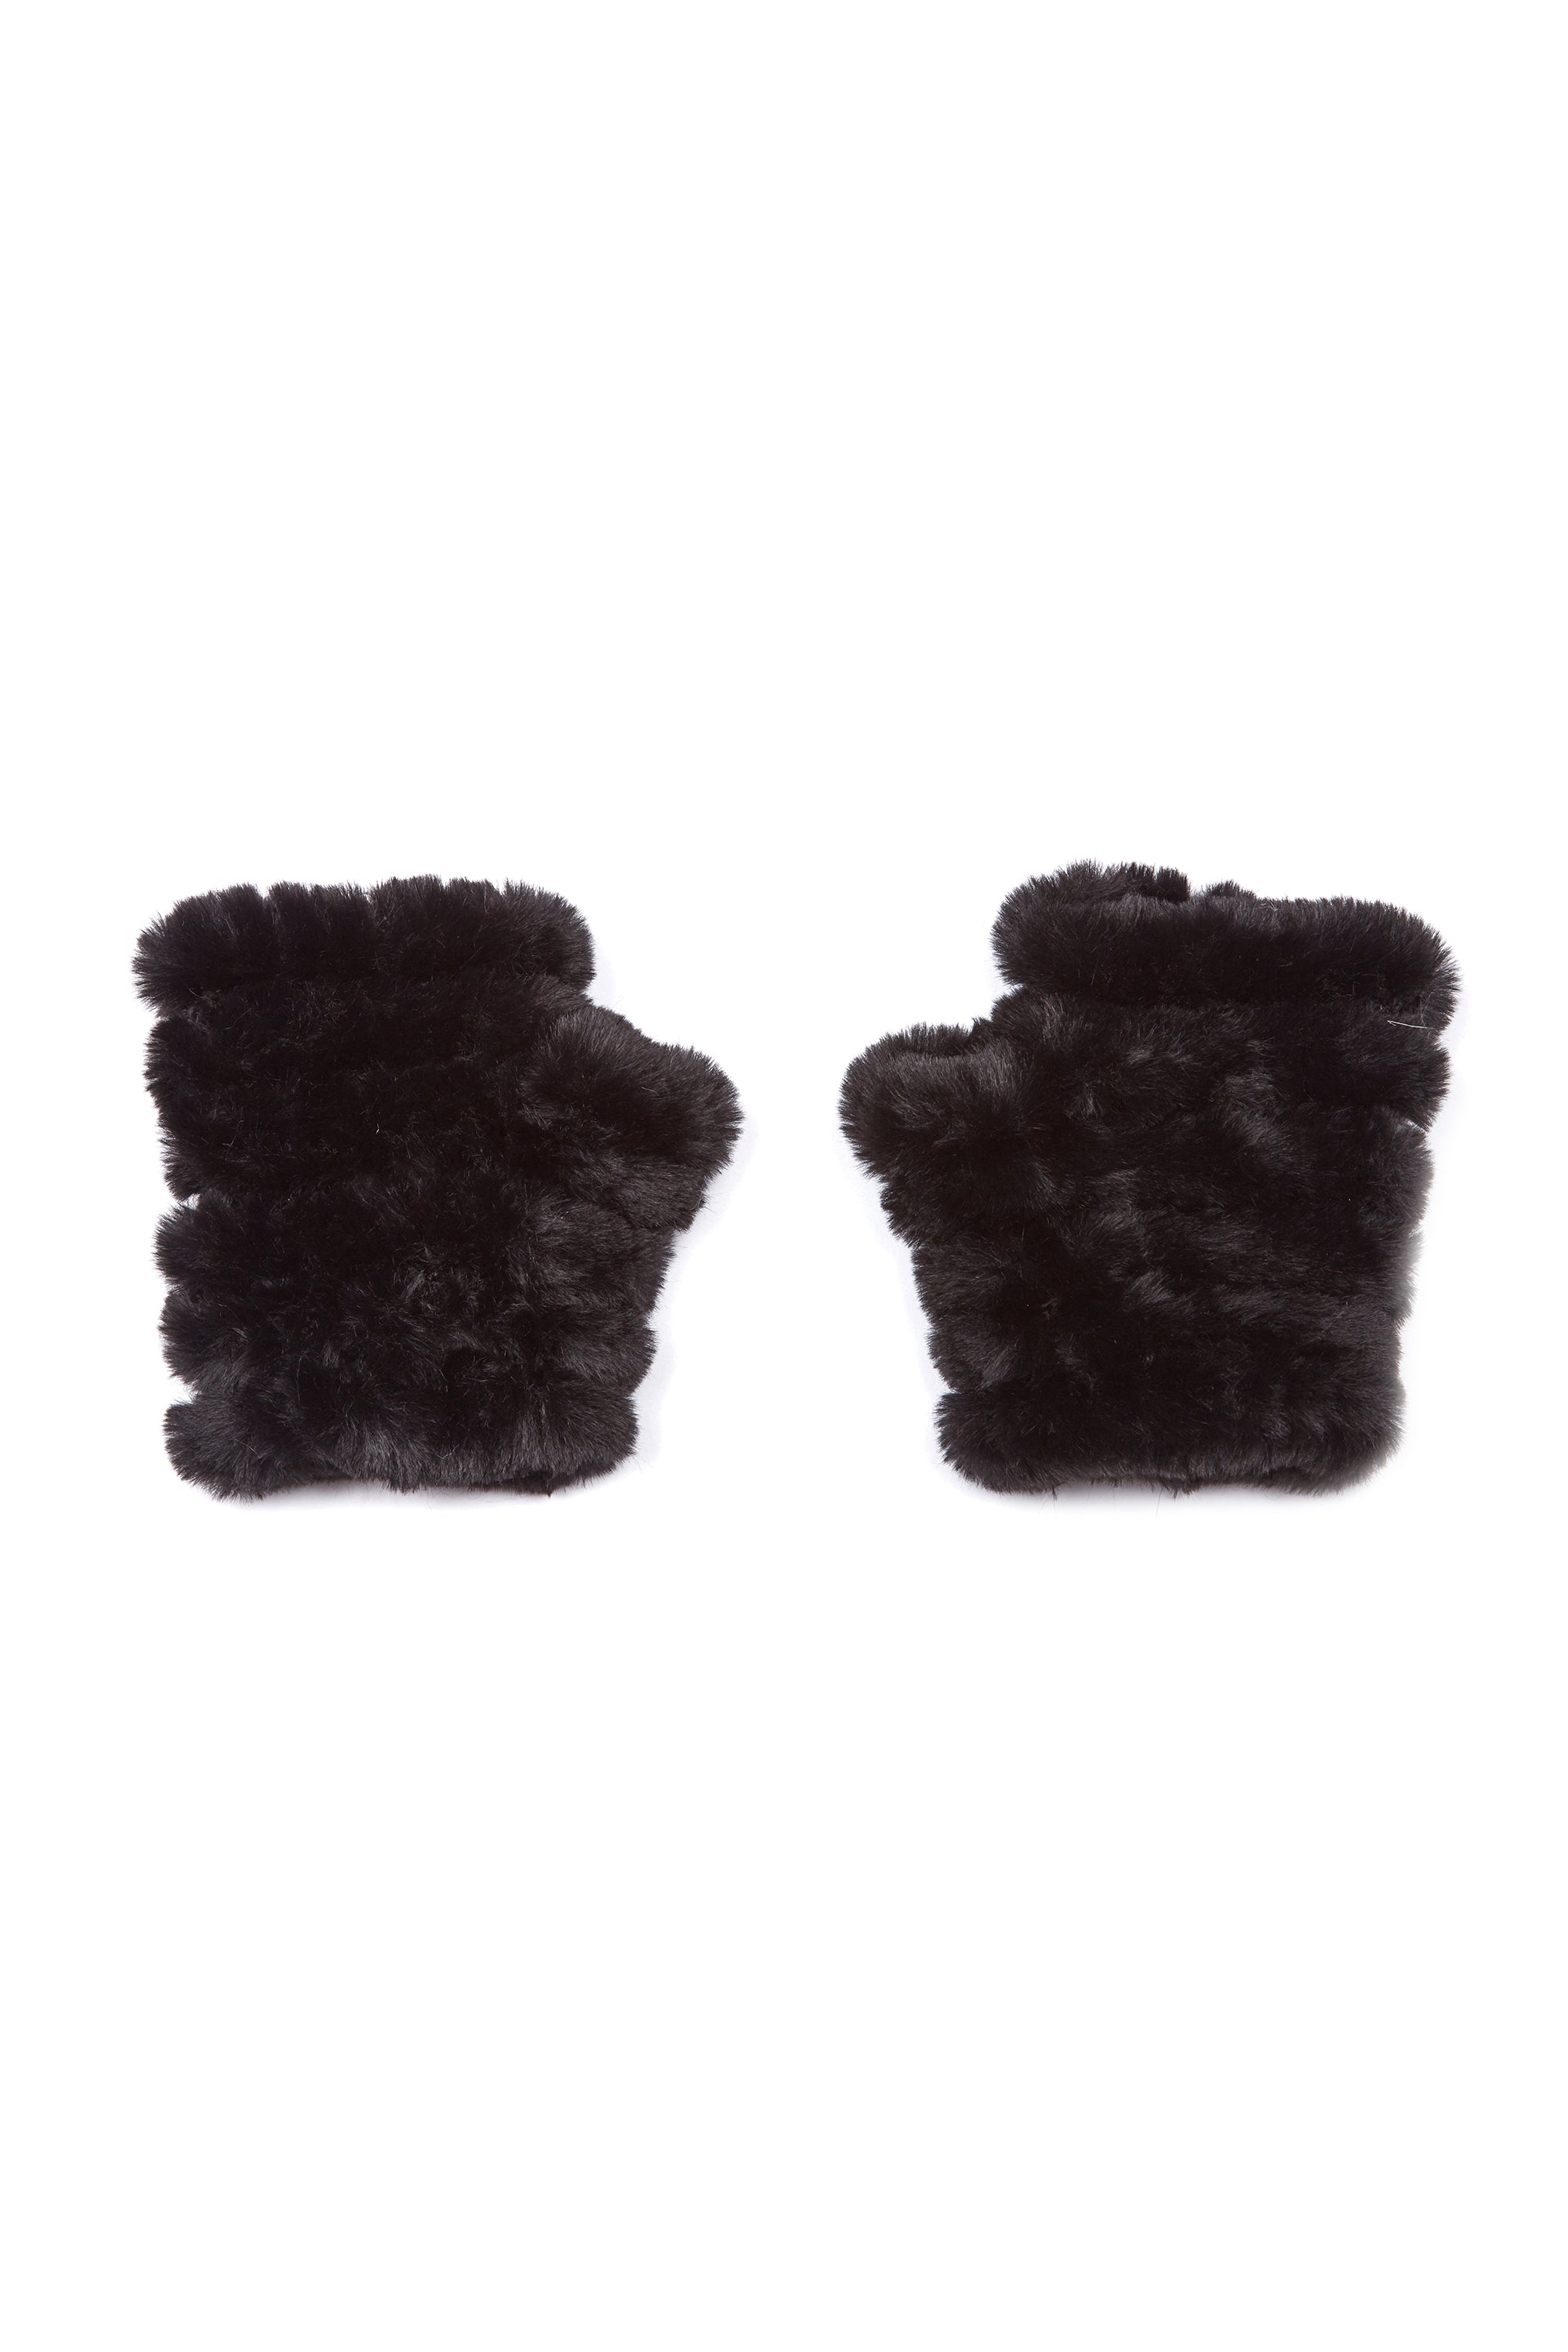 The Kids Mandy Mitten - Faux Fur - Black